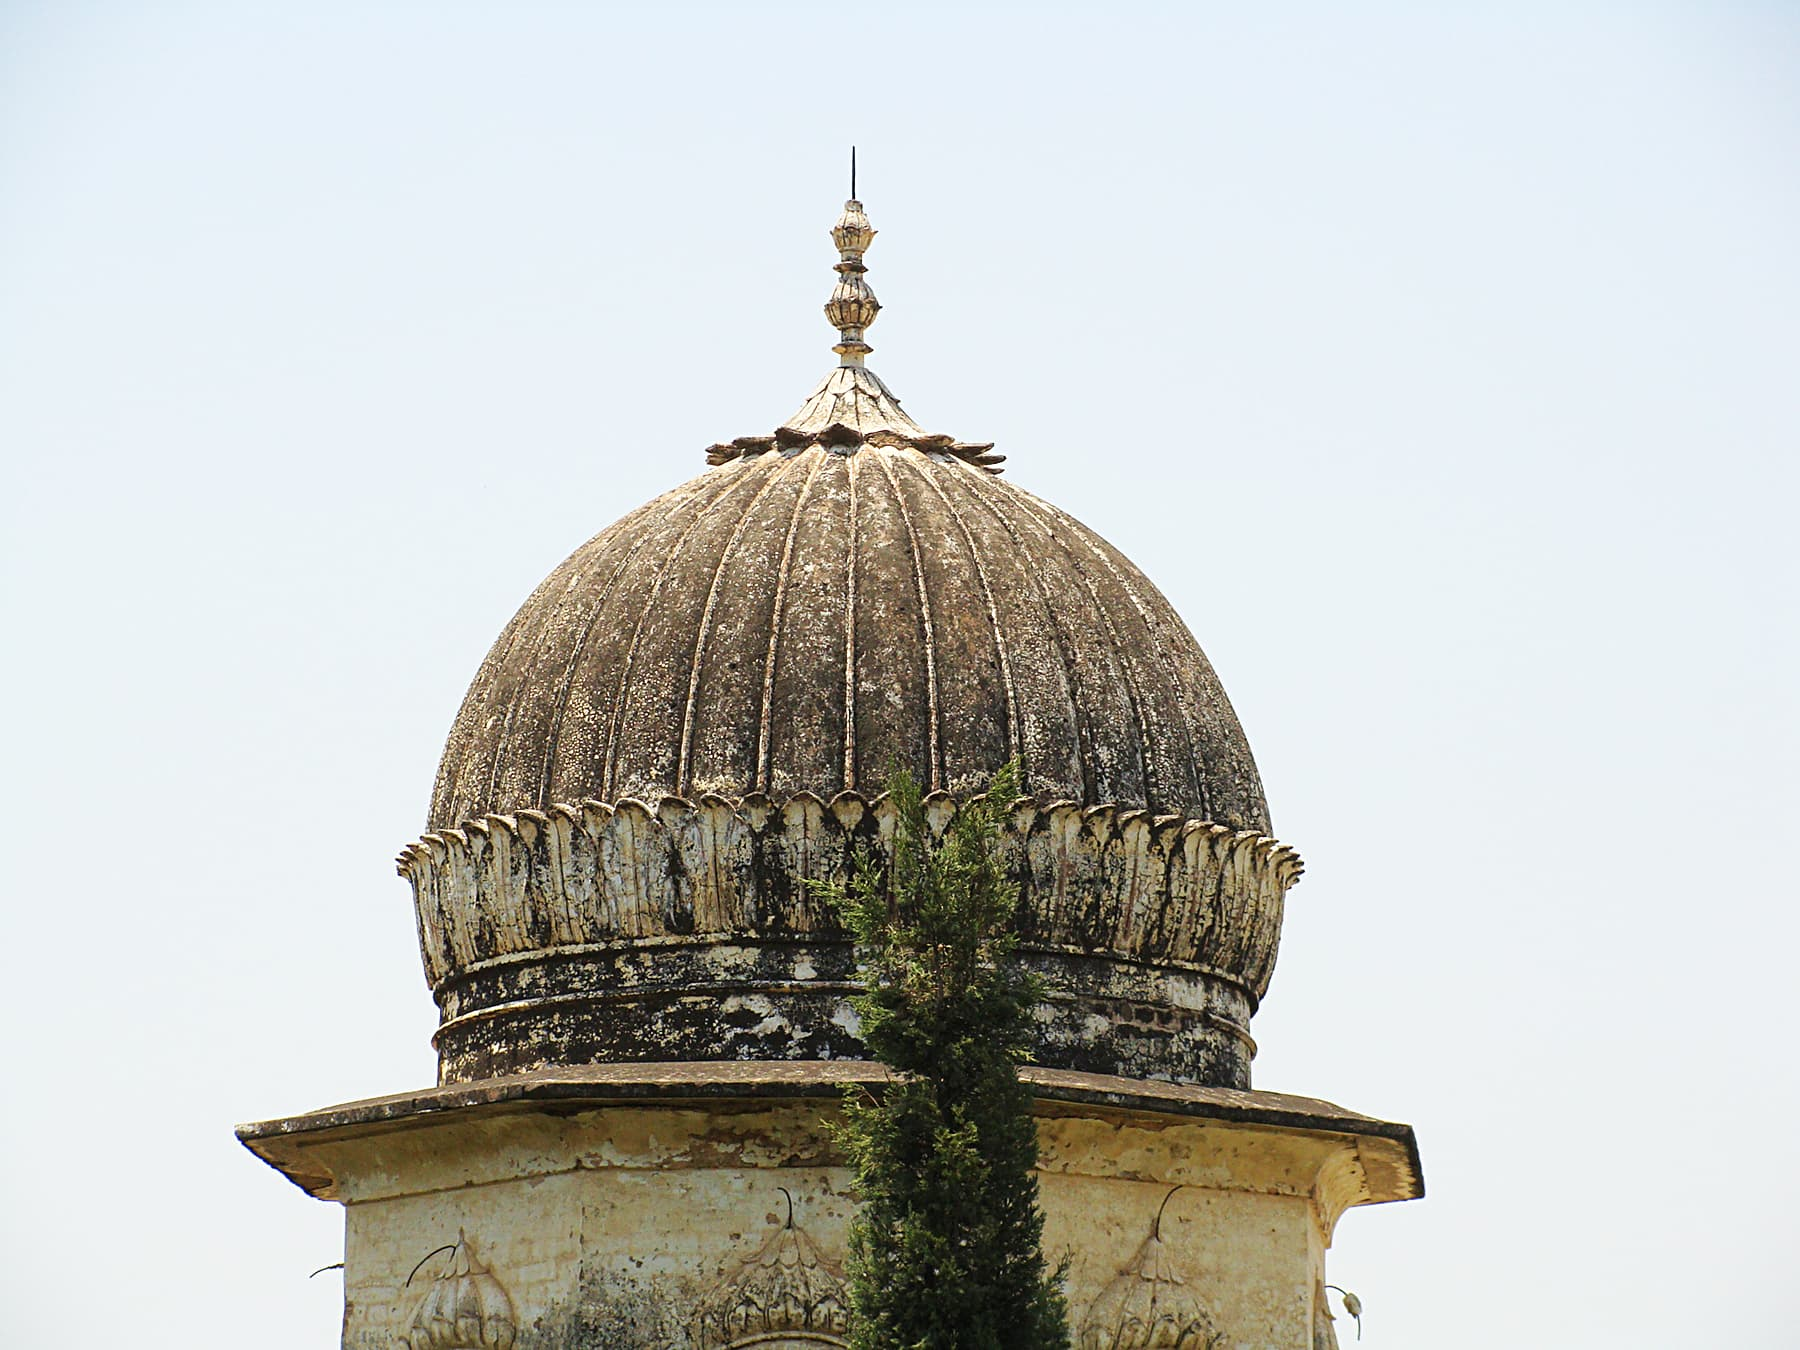 The ribbed dome of the Doberan Kallan gurdwara.